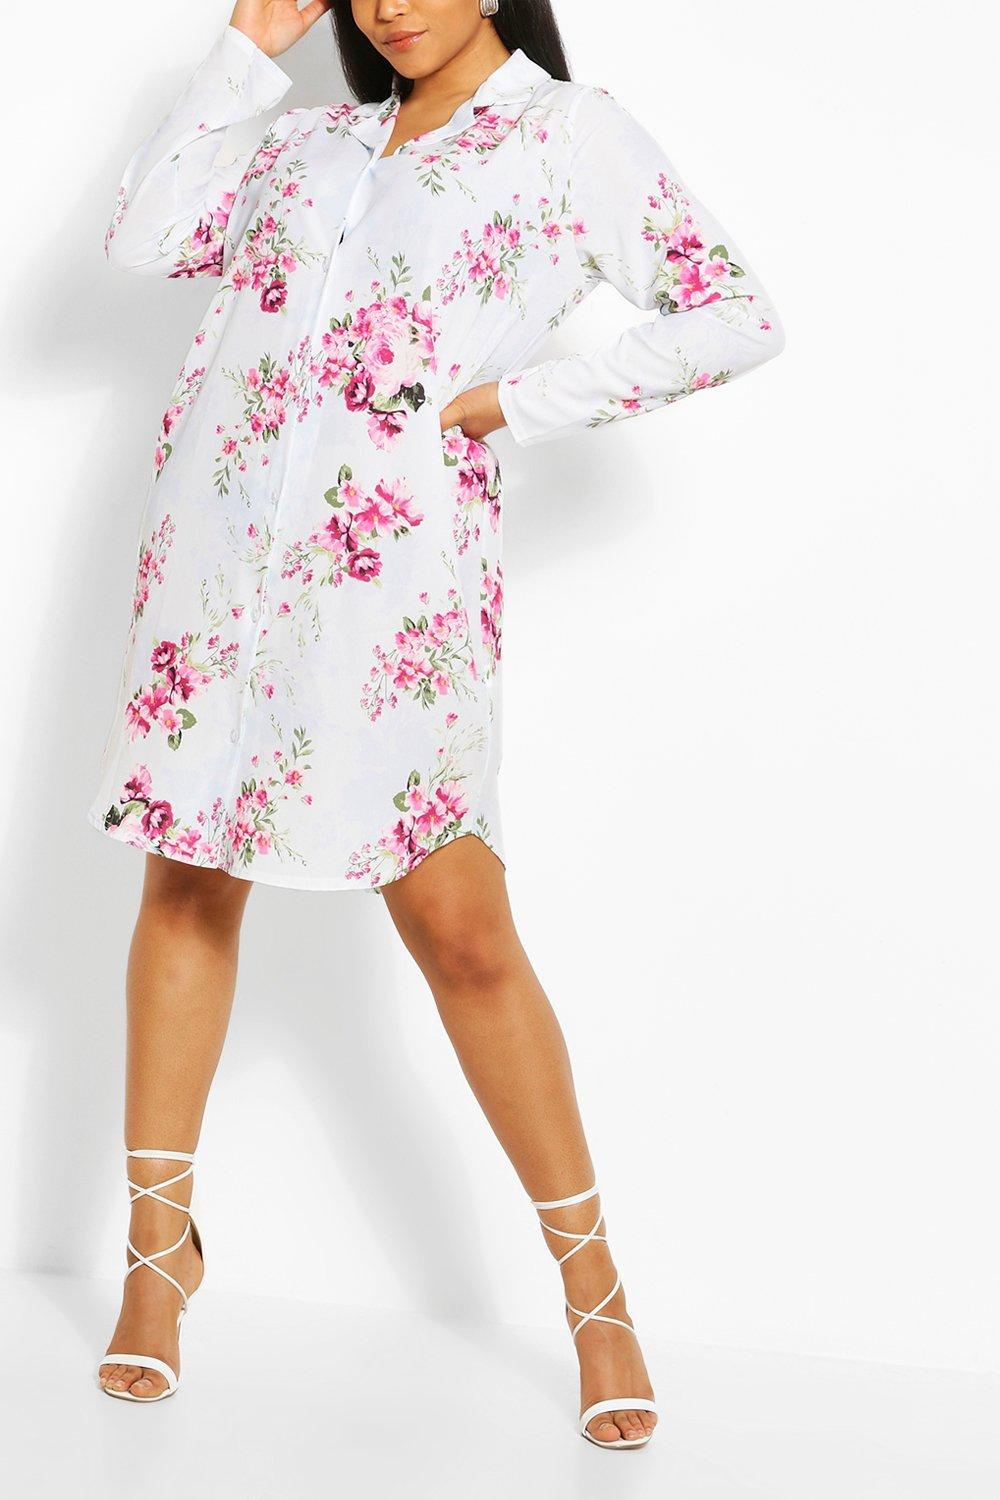 Plus Floral Print Shirt Dress 7